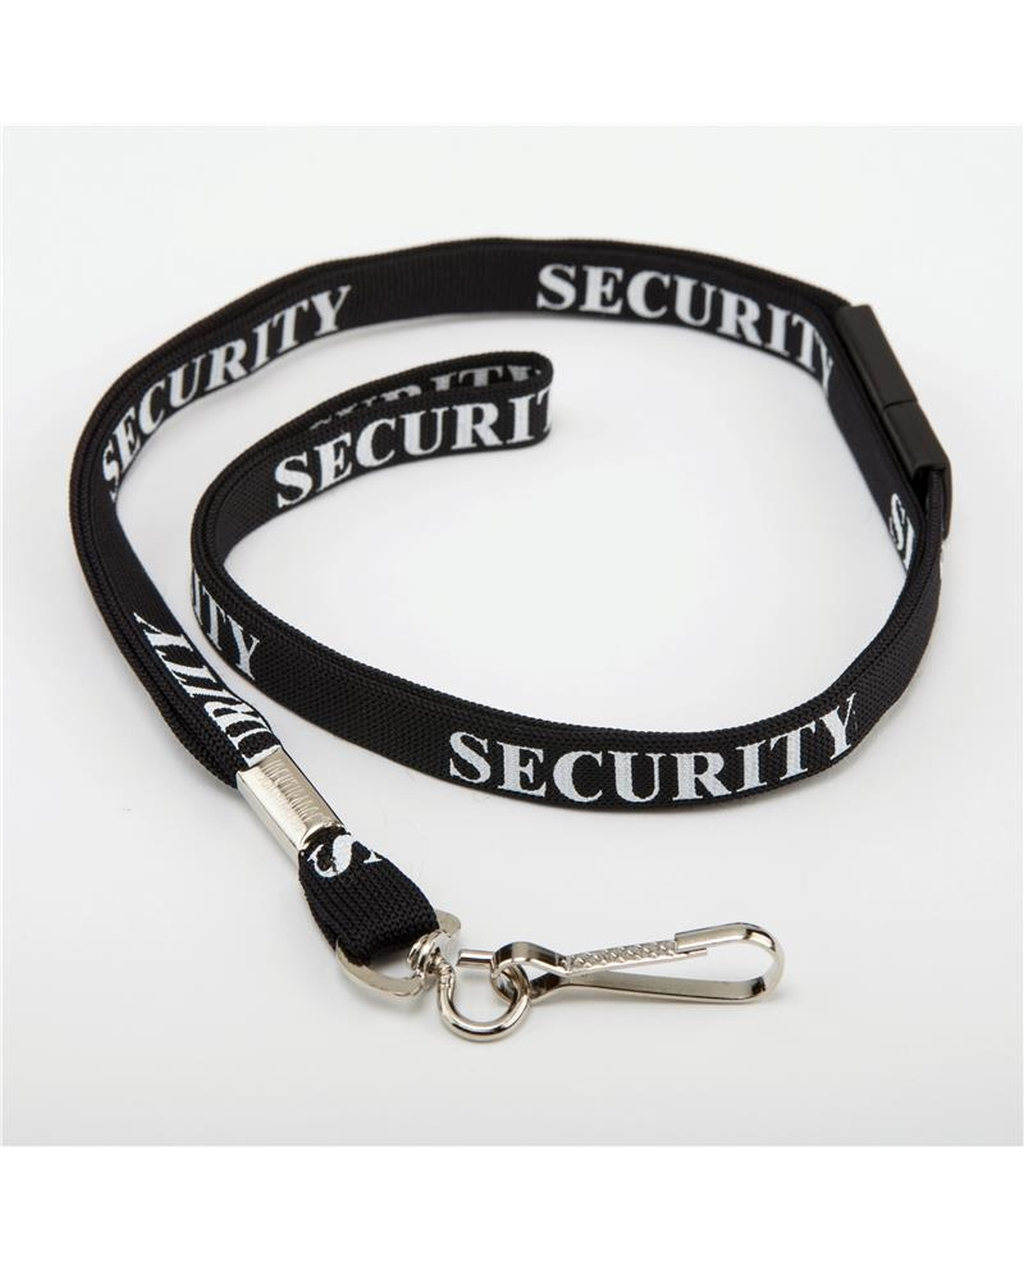 10 Printed Breakaway Lanyard - SECURITY